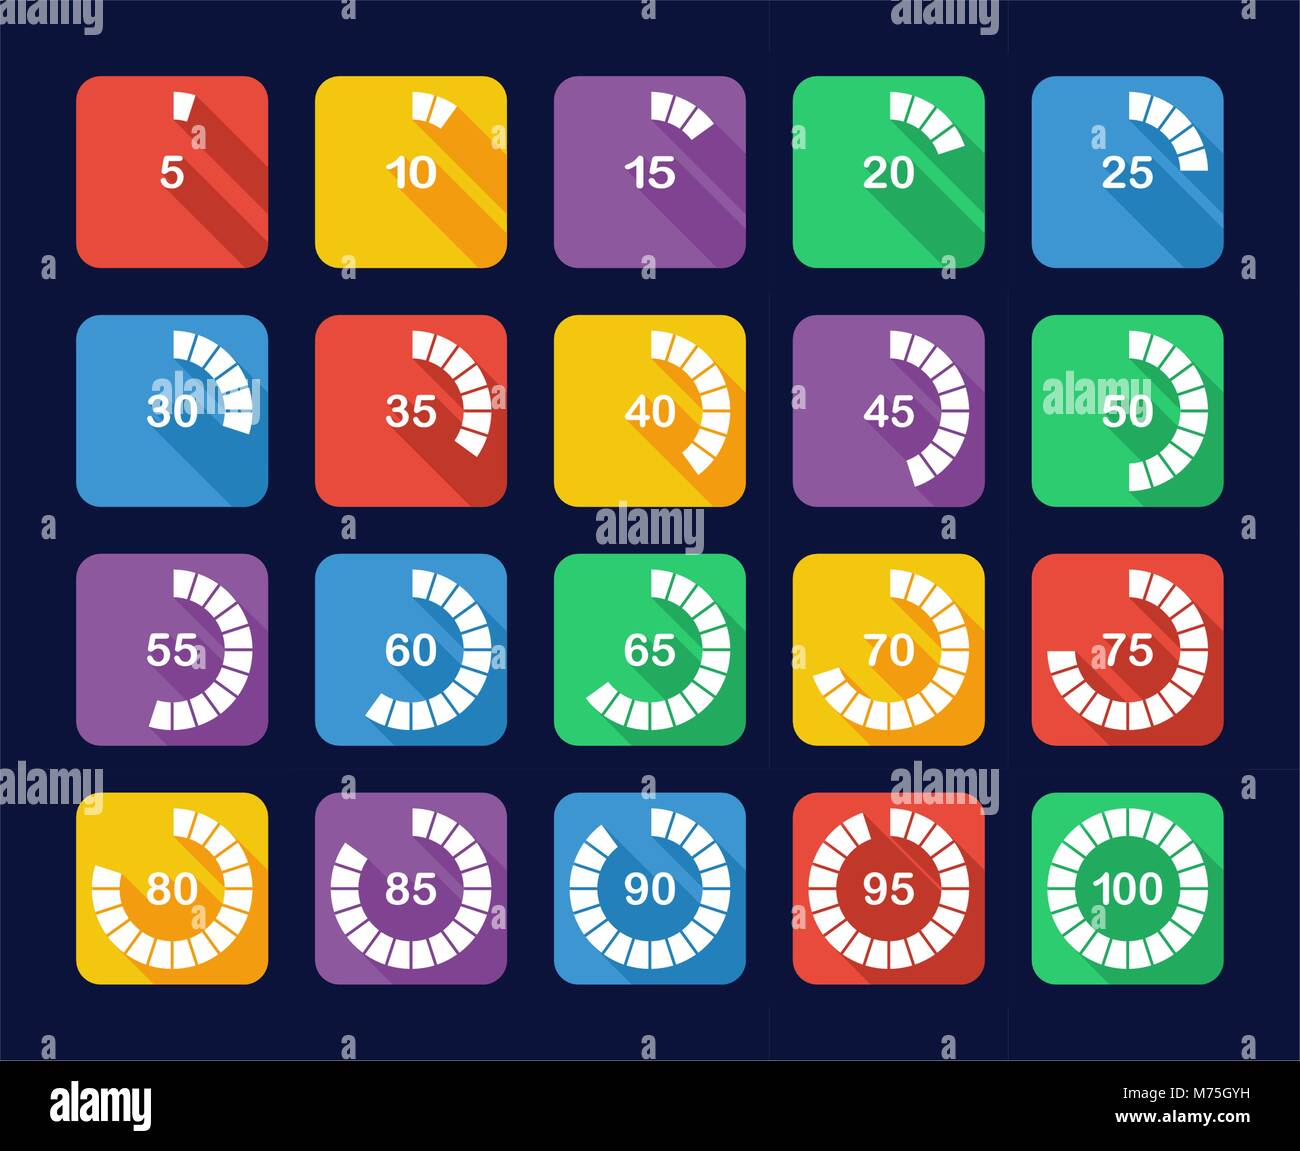 Loading Or Percentage Icons Set - Stock Vector